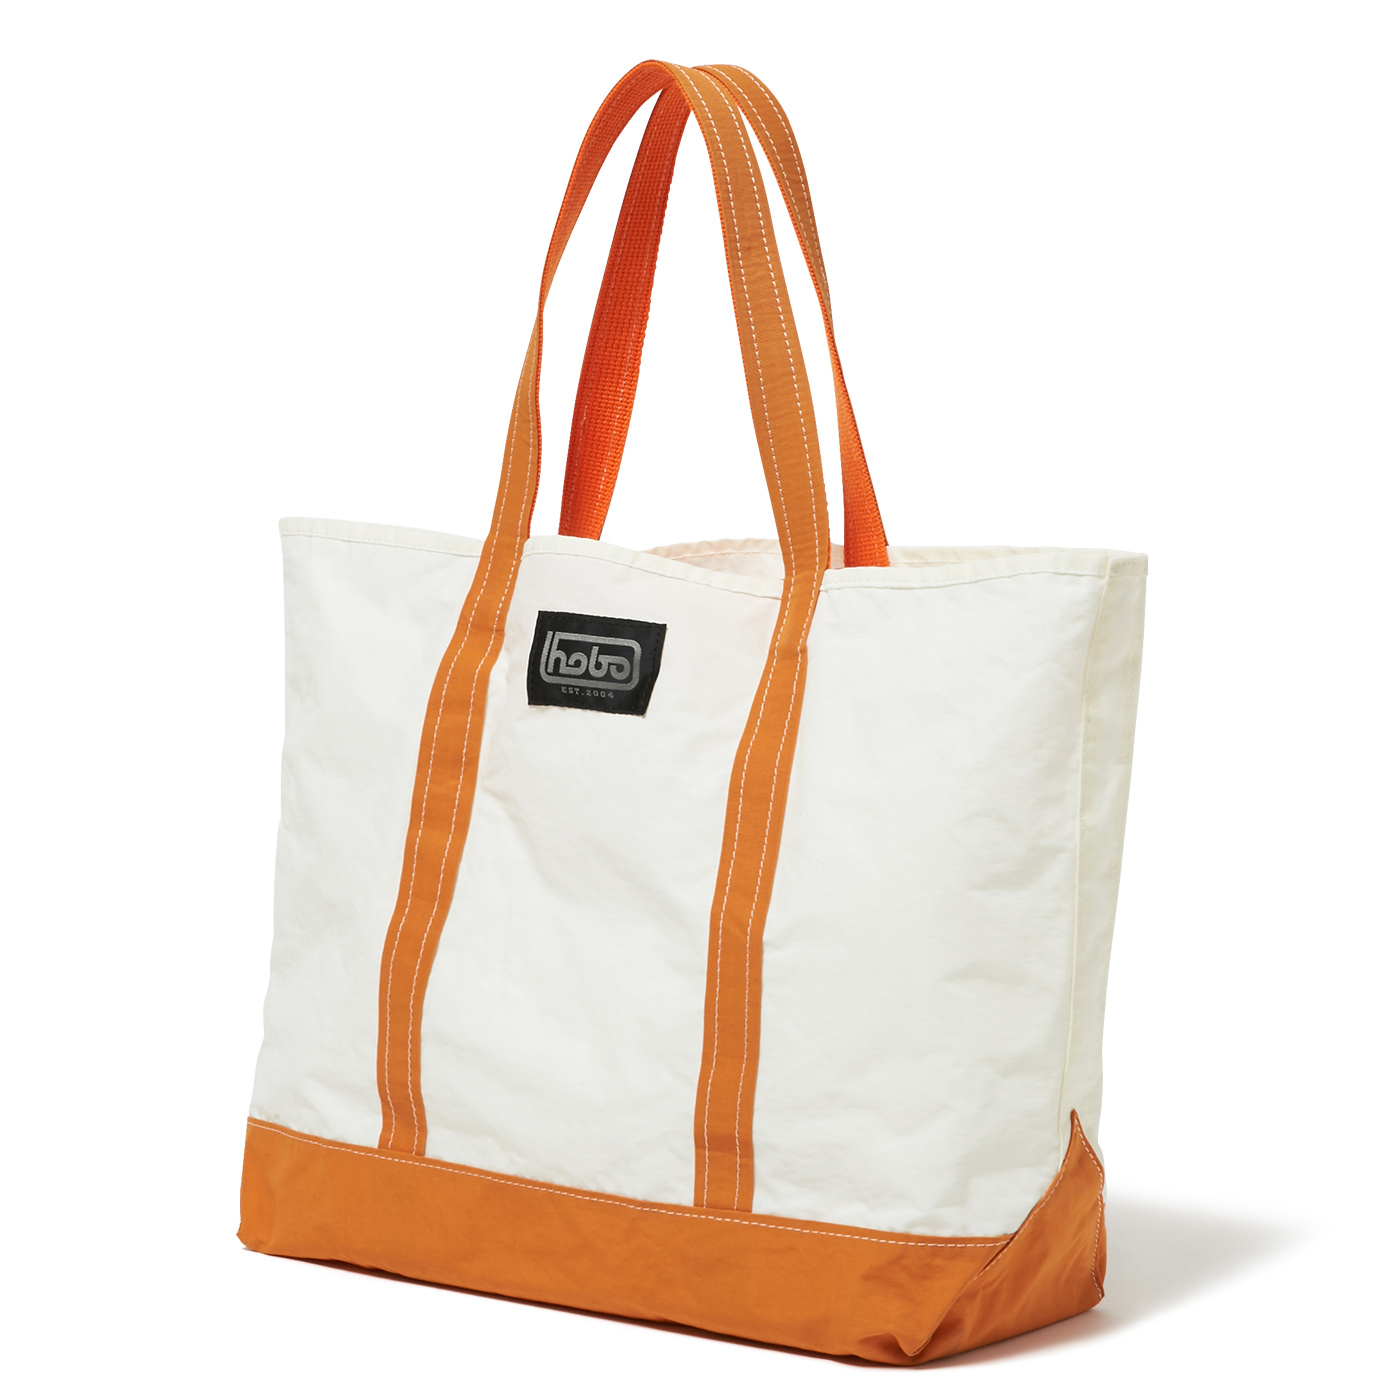 HOBO / Cotton Nylon Grosgrain Tote Bag M -orange